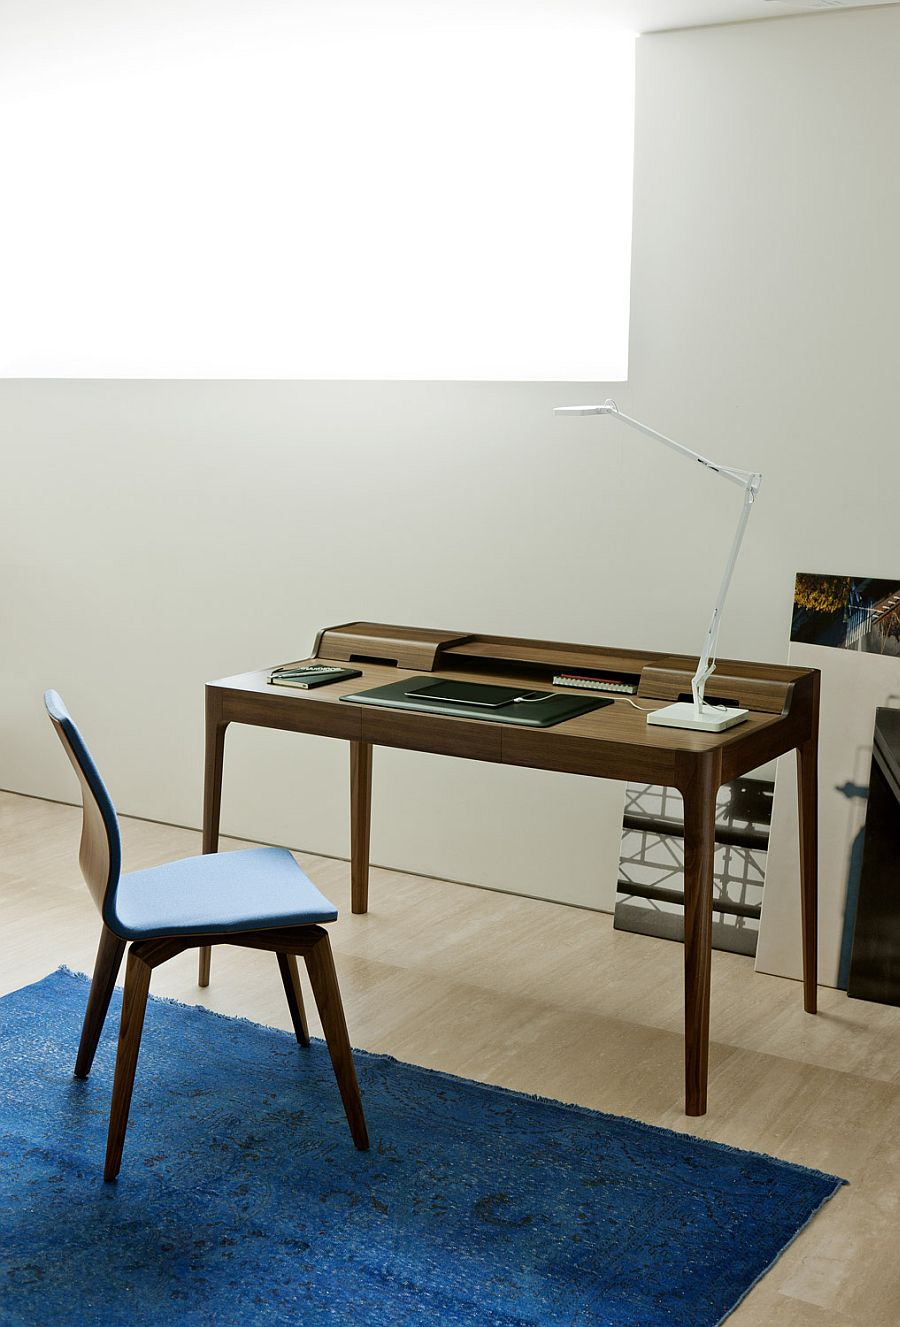 Saffo desk from Porada by C. Ballabio